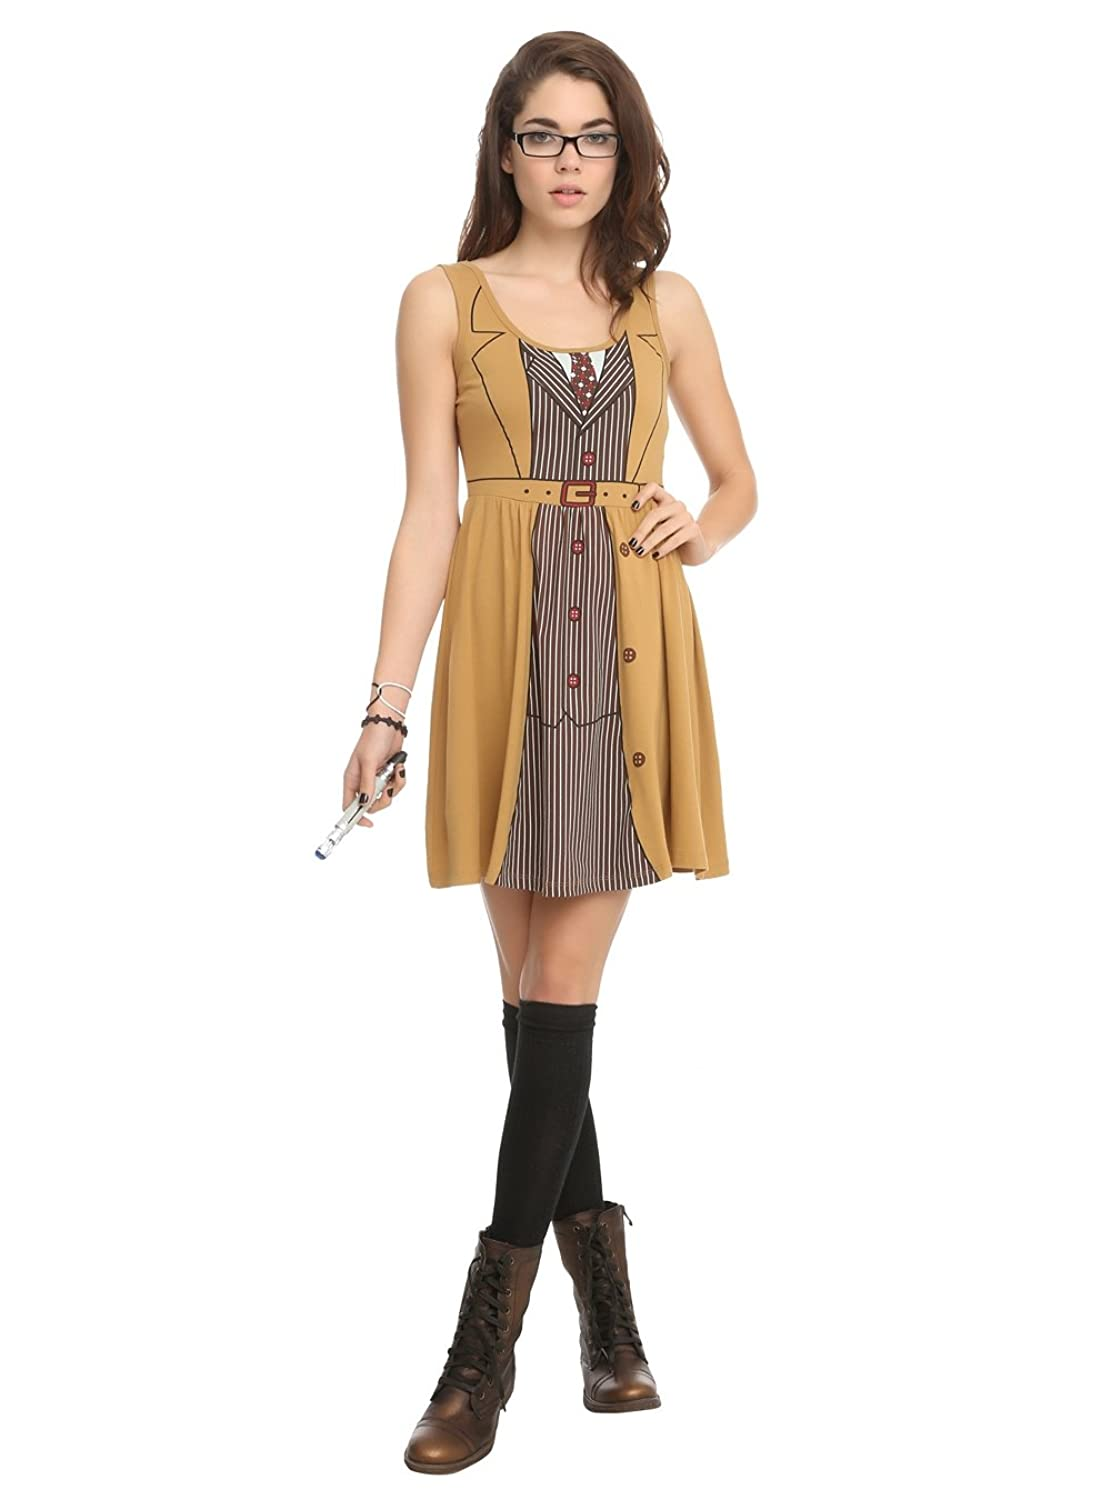 Doctor Who Her Universe David Tennant Tenth Doctor Costume Dress  sc 1 st  HalloweenAngel & Dr Who 10th Doctor Costume for Women